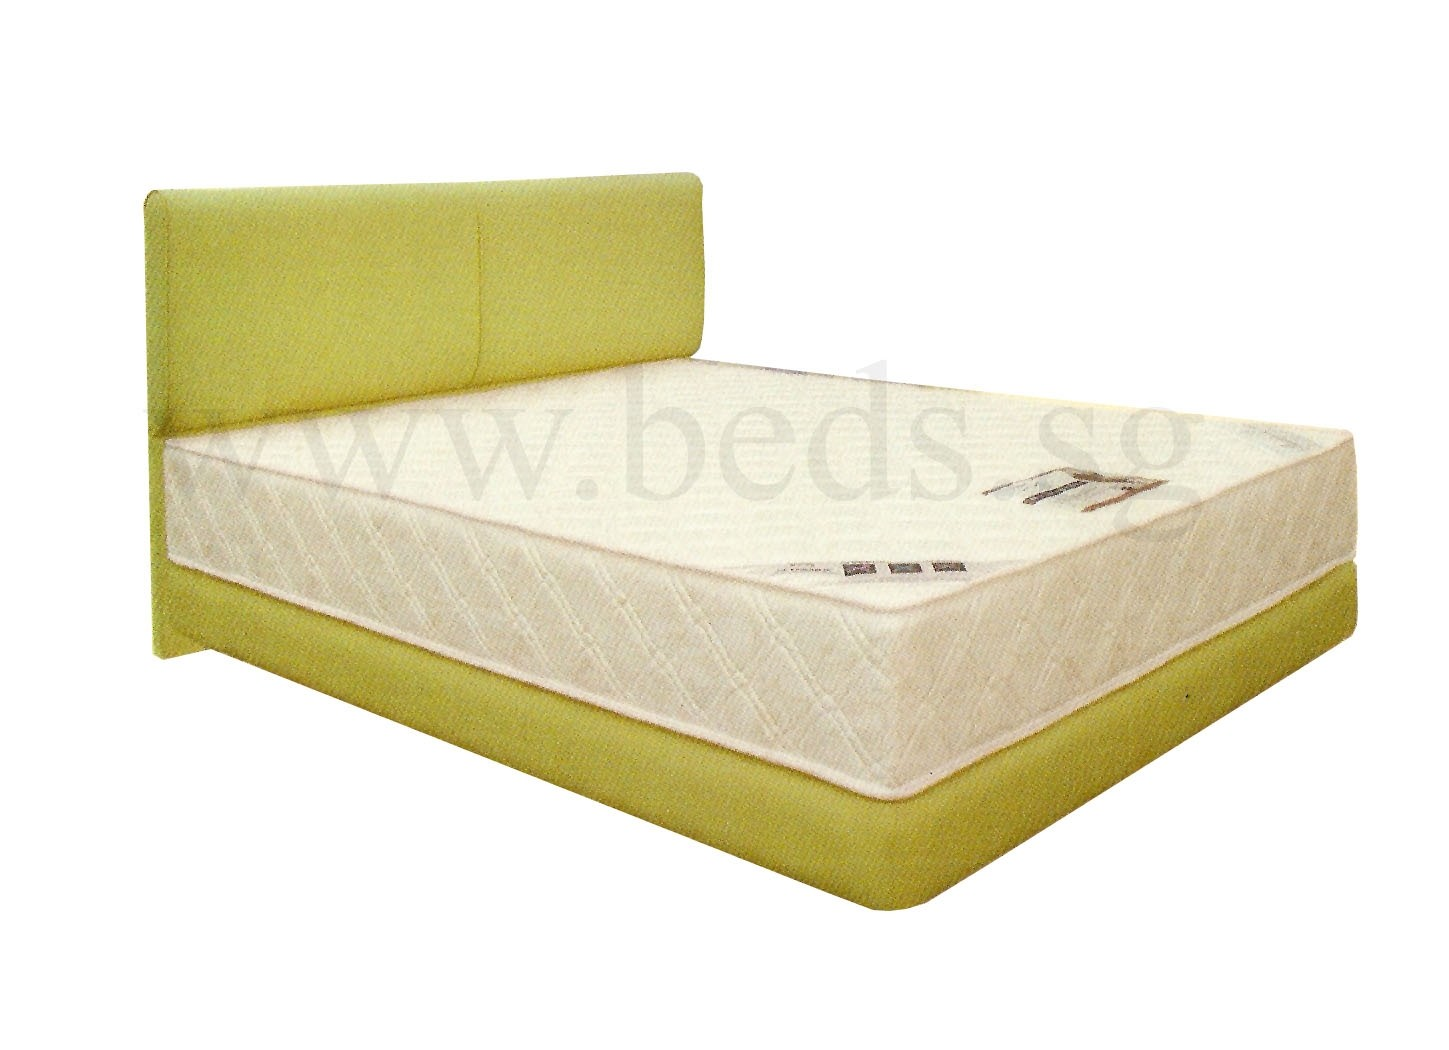 Mattress King 1 Stock Offer Maxcoil United Back Master Mattress King 9inch In286328